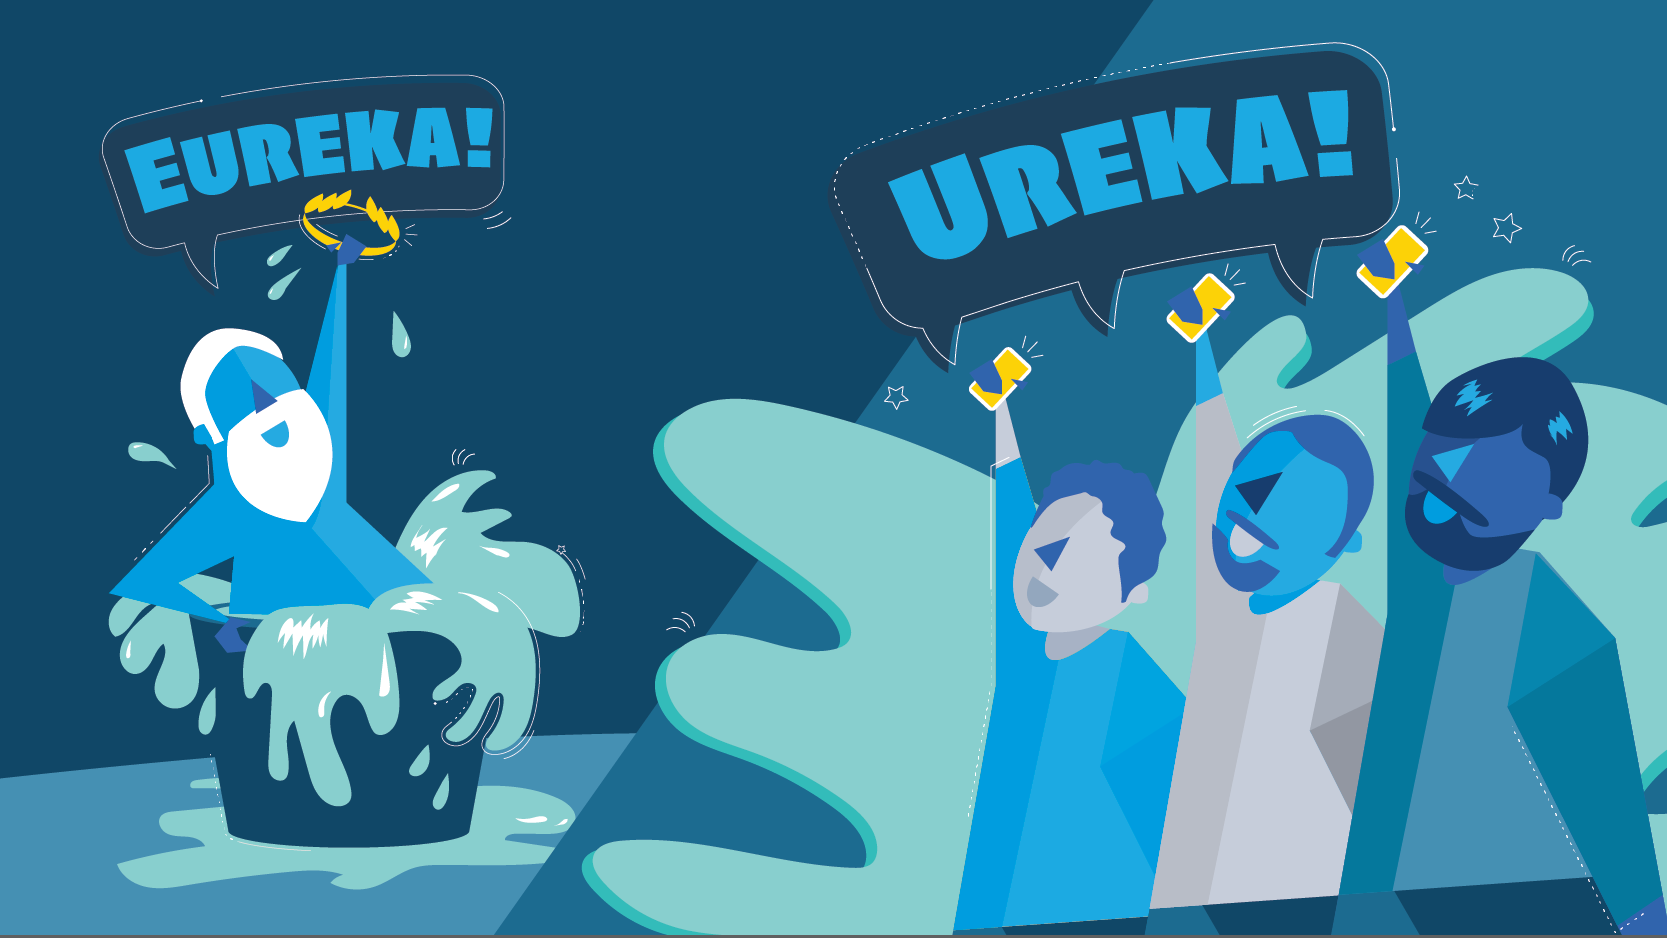 Ureka Science! An Open Science Solution